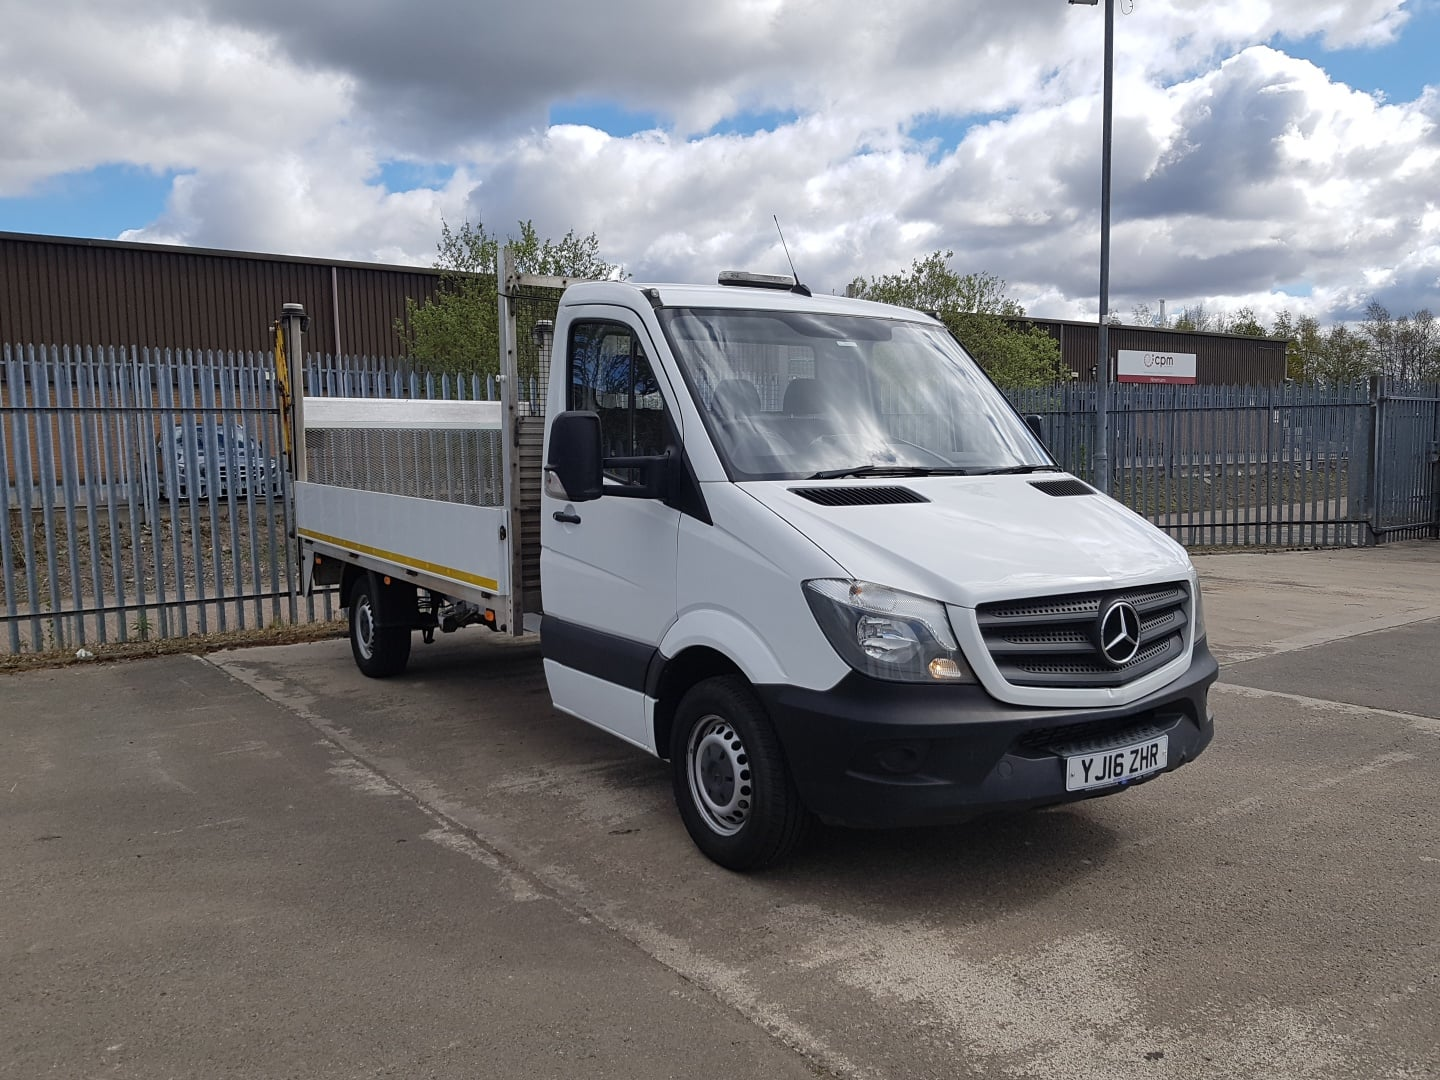 2016 Mercedes Sprinter, Manual Gearbox, Day Cab, DEL Column Tailift (500kg Capacity), Radio/USB, 97,106km, Dropside Body, Choice & Warranty Available.